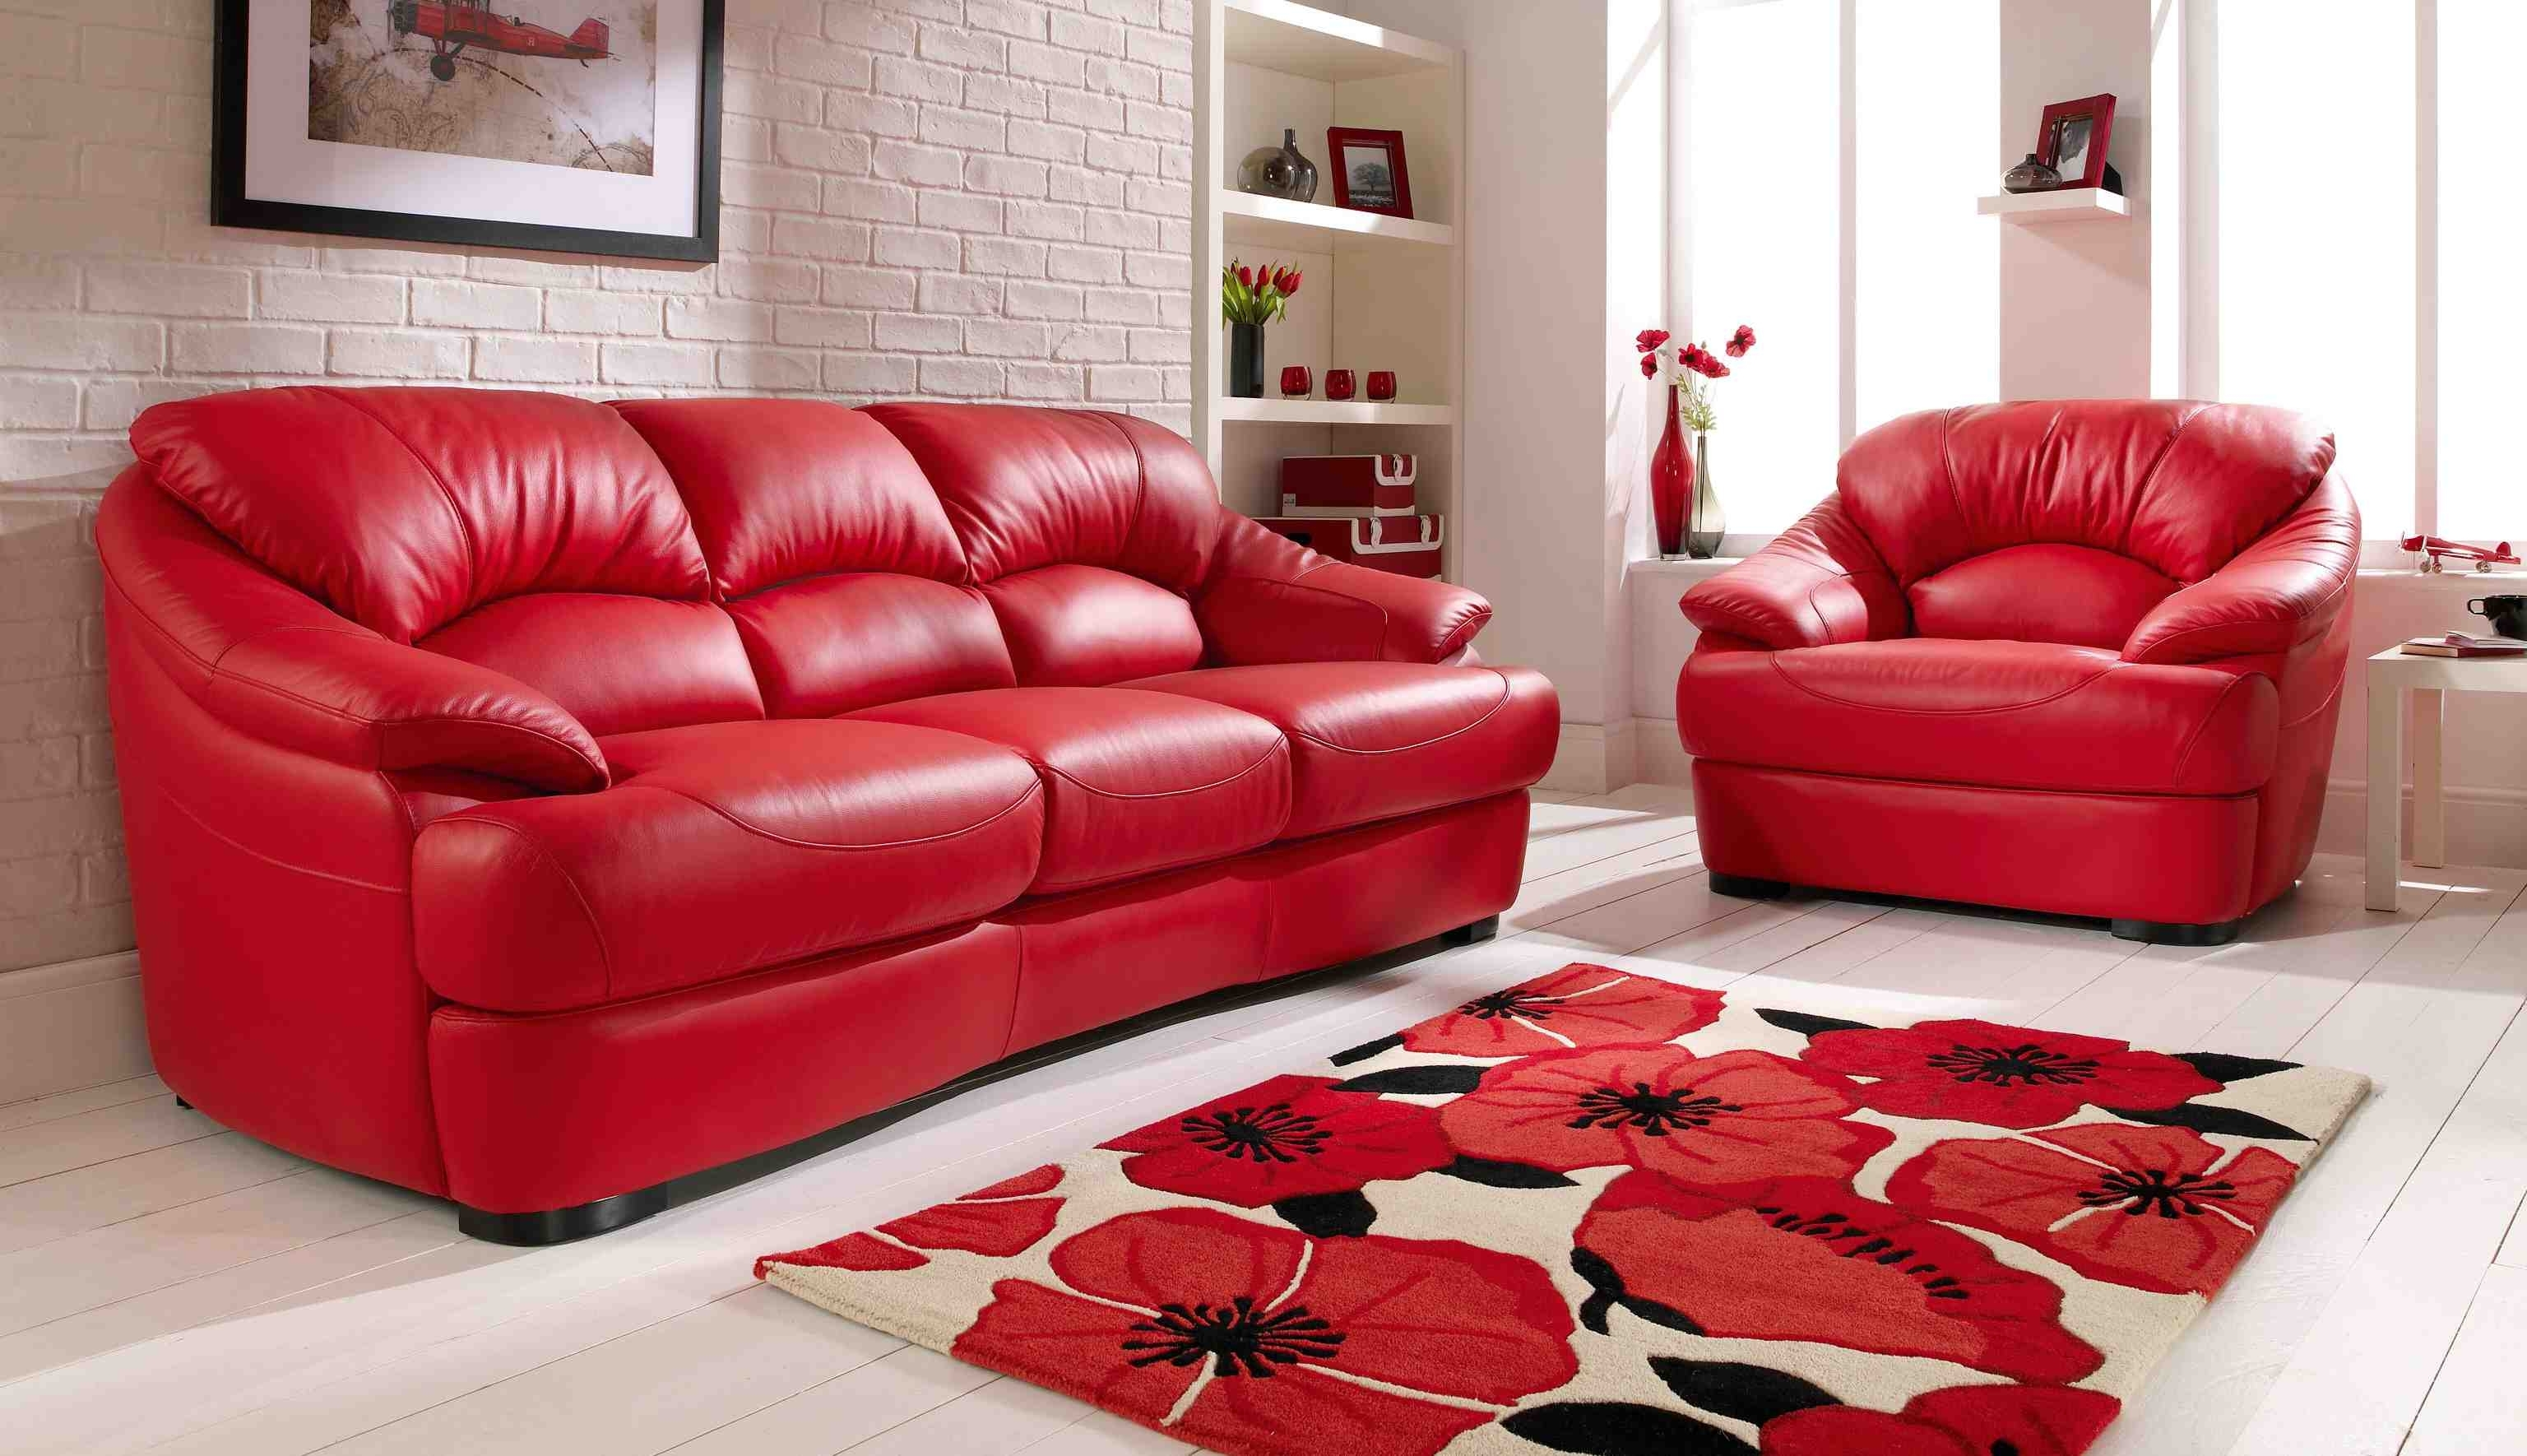 Small Red Leather Sectional Sofas Within Famous Sofas : Red Sectional Couch L Sofa Modular Sectional Sofa Gray (View 18 of 20)